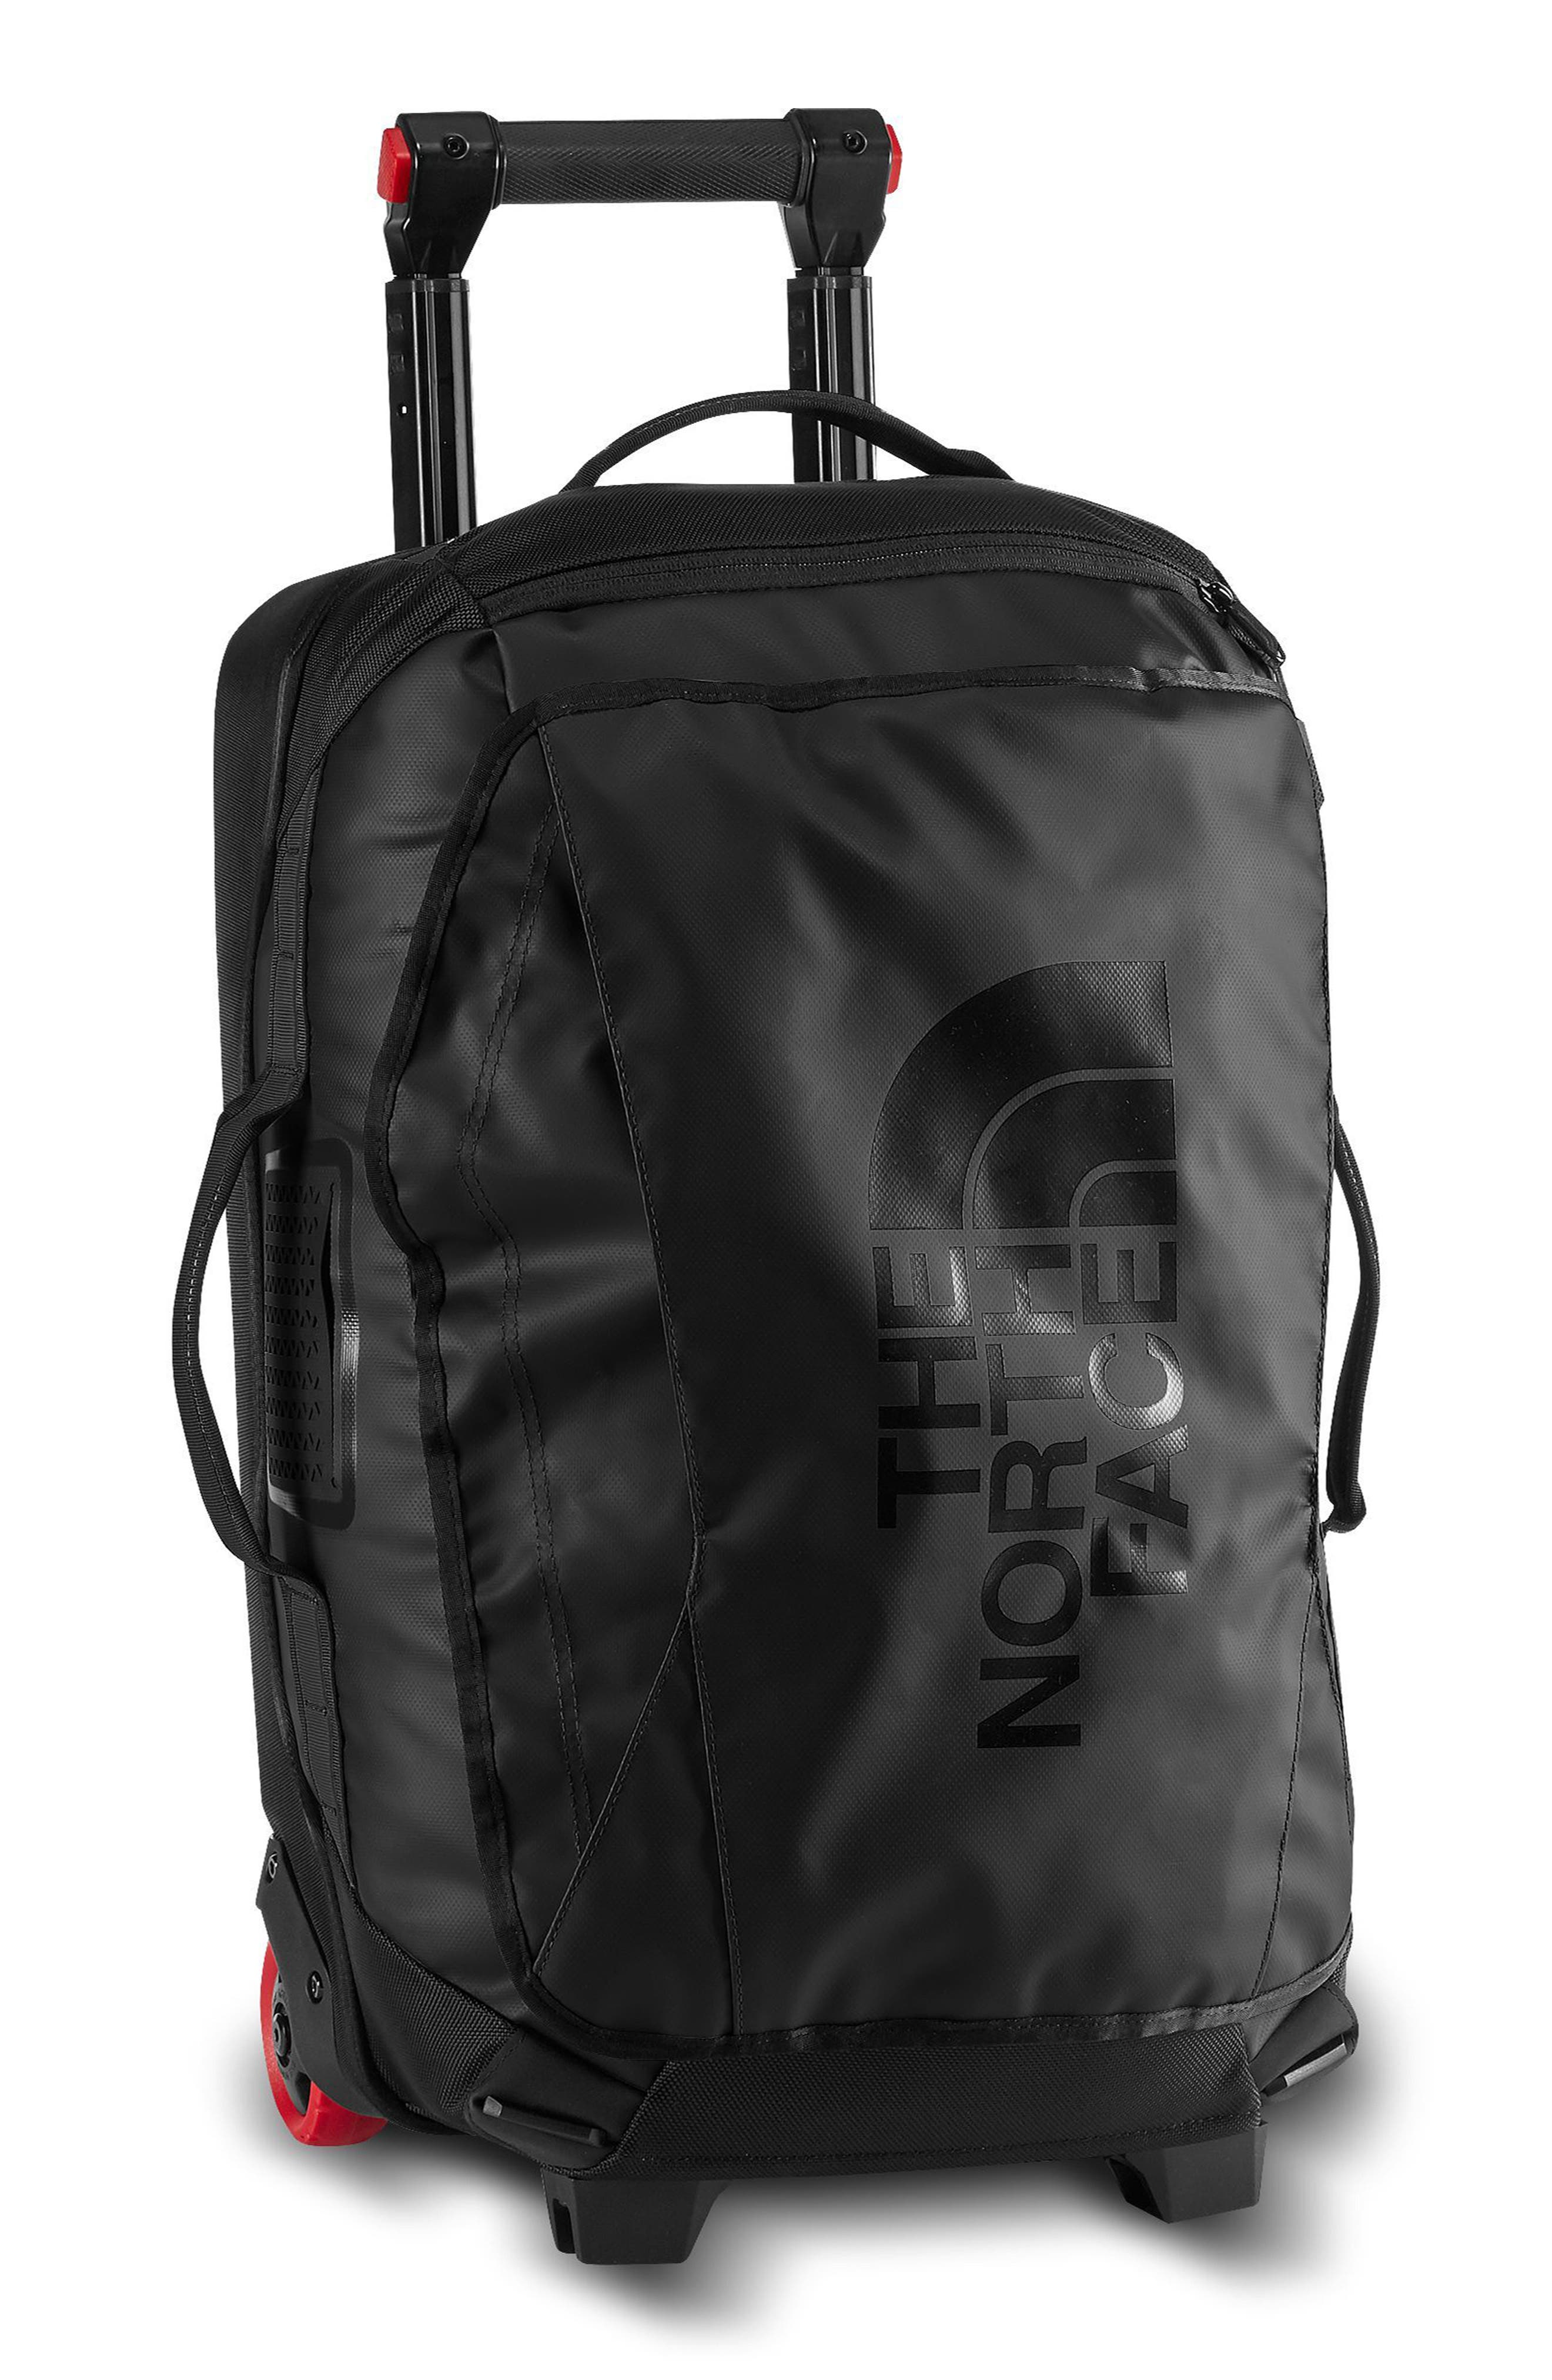 The North Face Rolling Thunder Wheeled Duffel Bag (22 Inch)